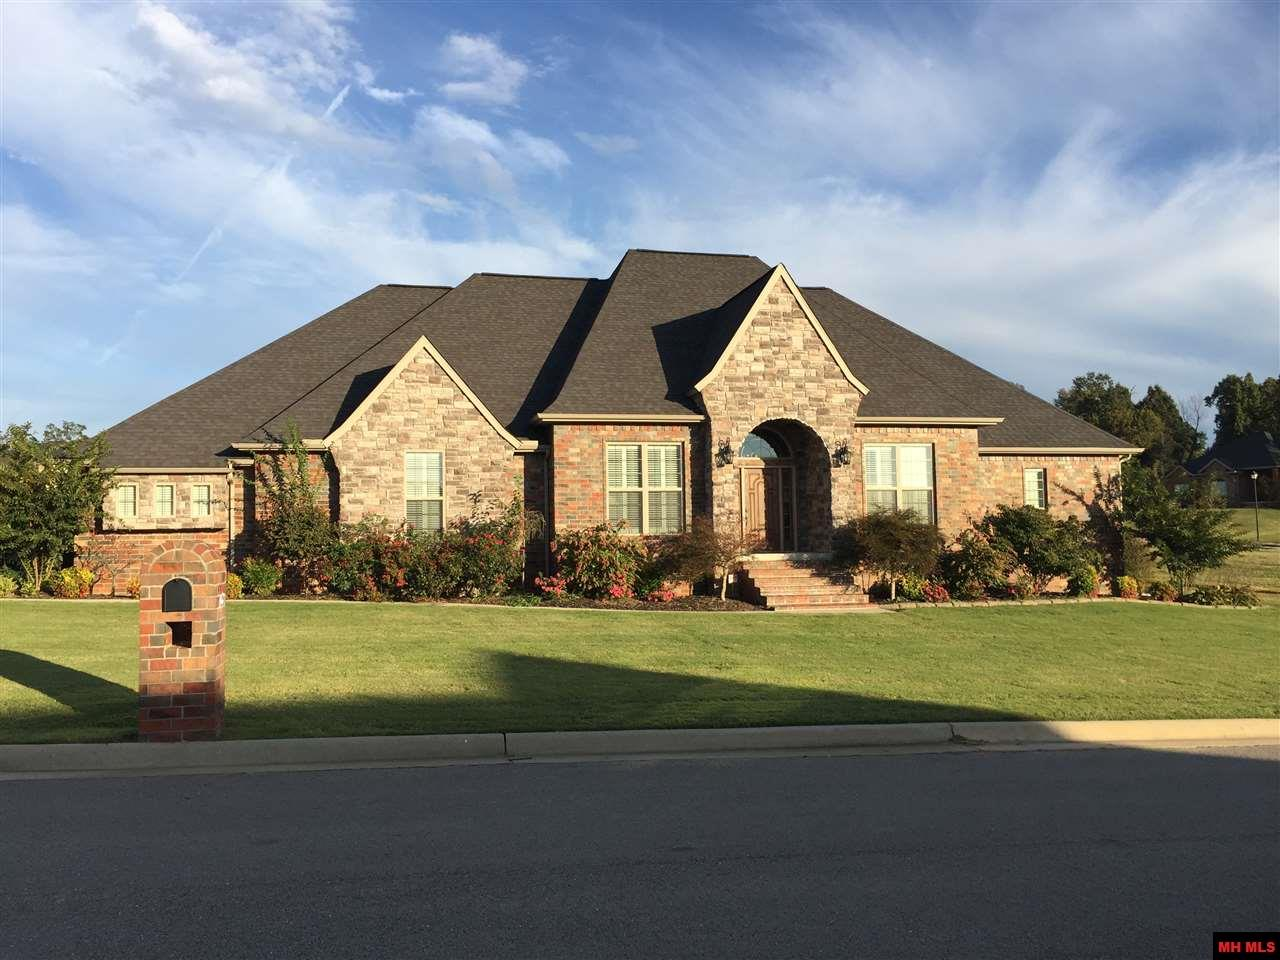 BEAUTIFUL CUSTOM STONE/BRICK HOME in desirable Big Creek Golf Community. Built in 2011, w/extensive upgrades since 2017, this spacious home has 4 BR, 3½ BA, covered patio & a lg yard ready for a pool or kid's play area. Lg chef's kitchen has custom cabinetry, DCS gas cook top & SS appliances. Spa-like master bath w/heated floor & huge closet w/custom built-ins. Open floor plan w/12' ceilings, gas fp, main floor office & bonus rm upstairs w/wet bar. 3-car garage, security system, sprinkler system & storage.